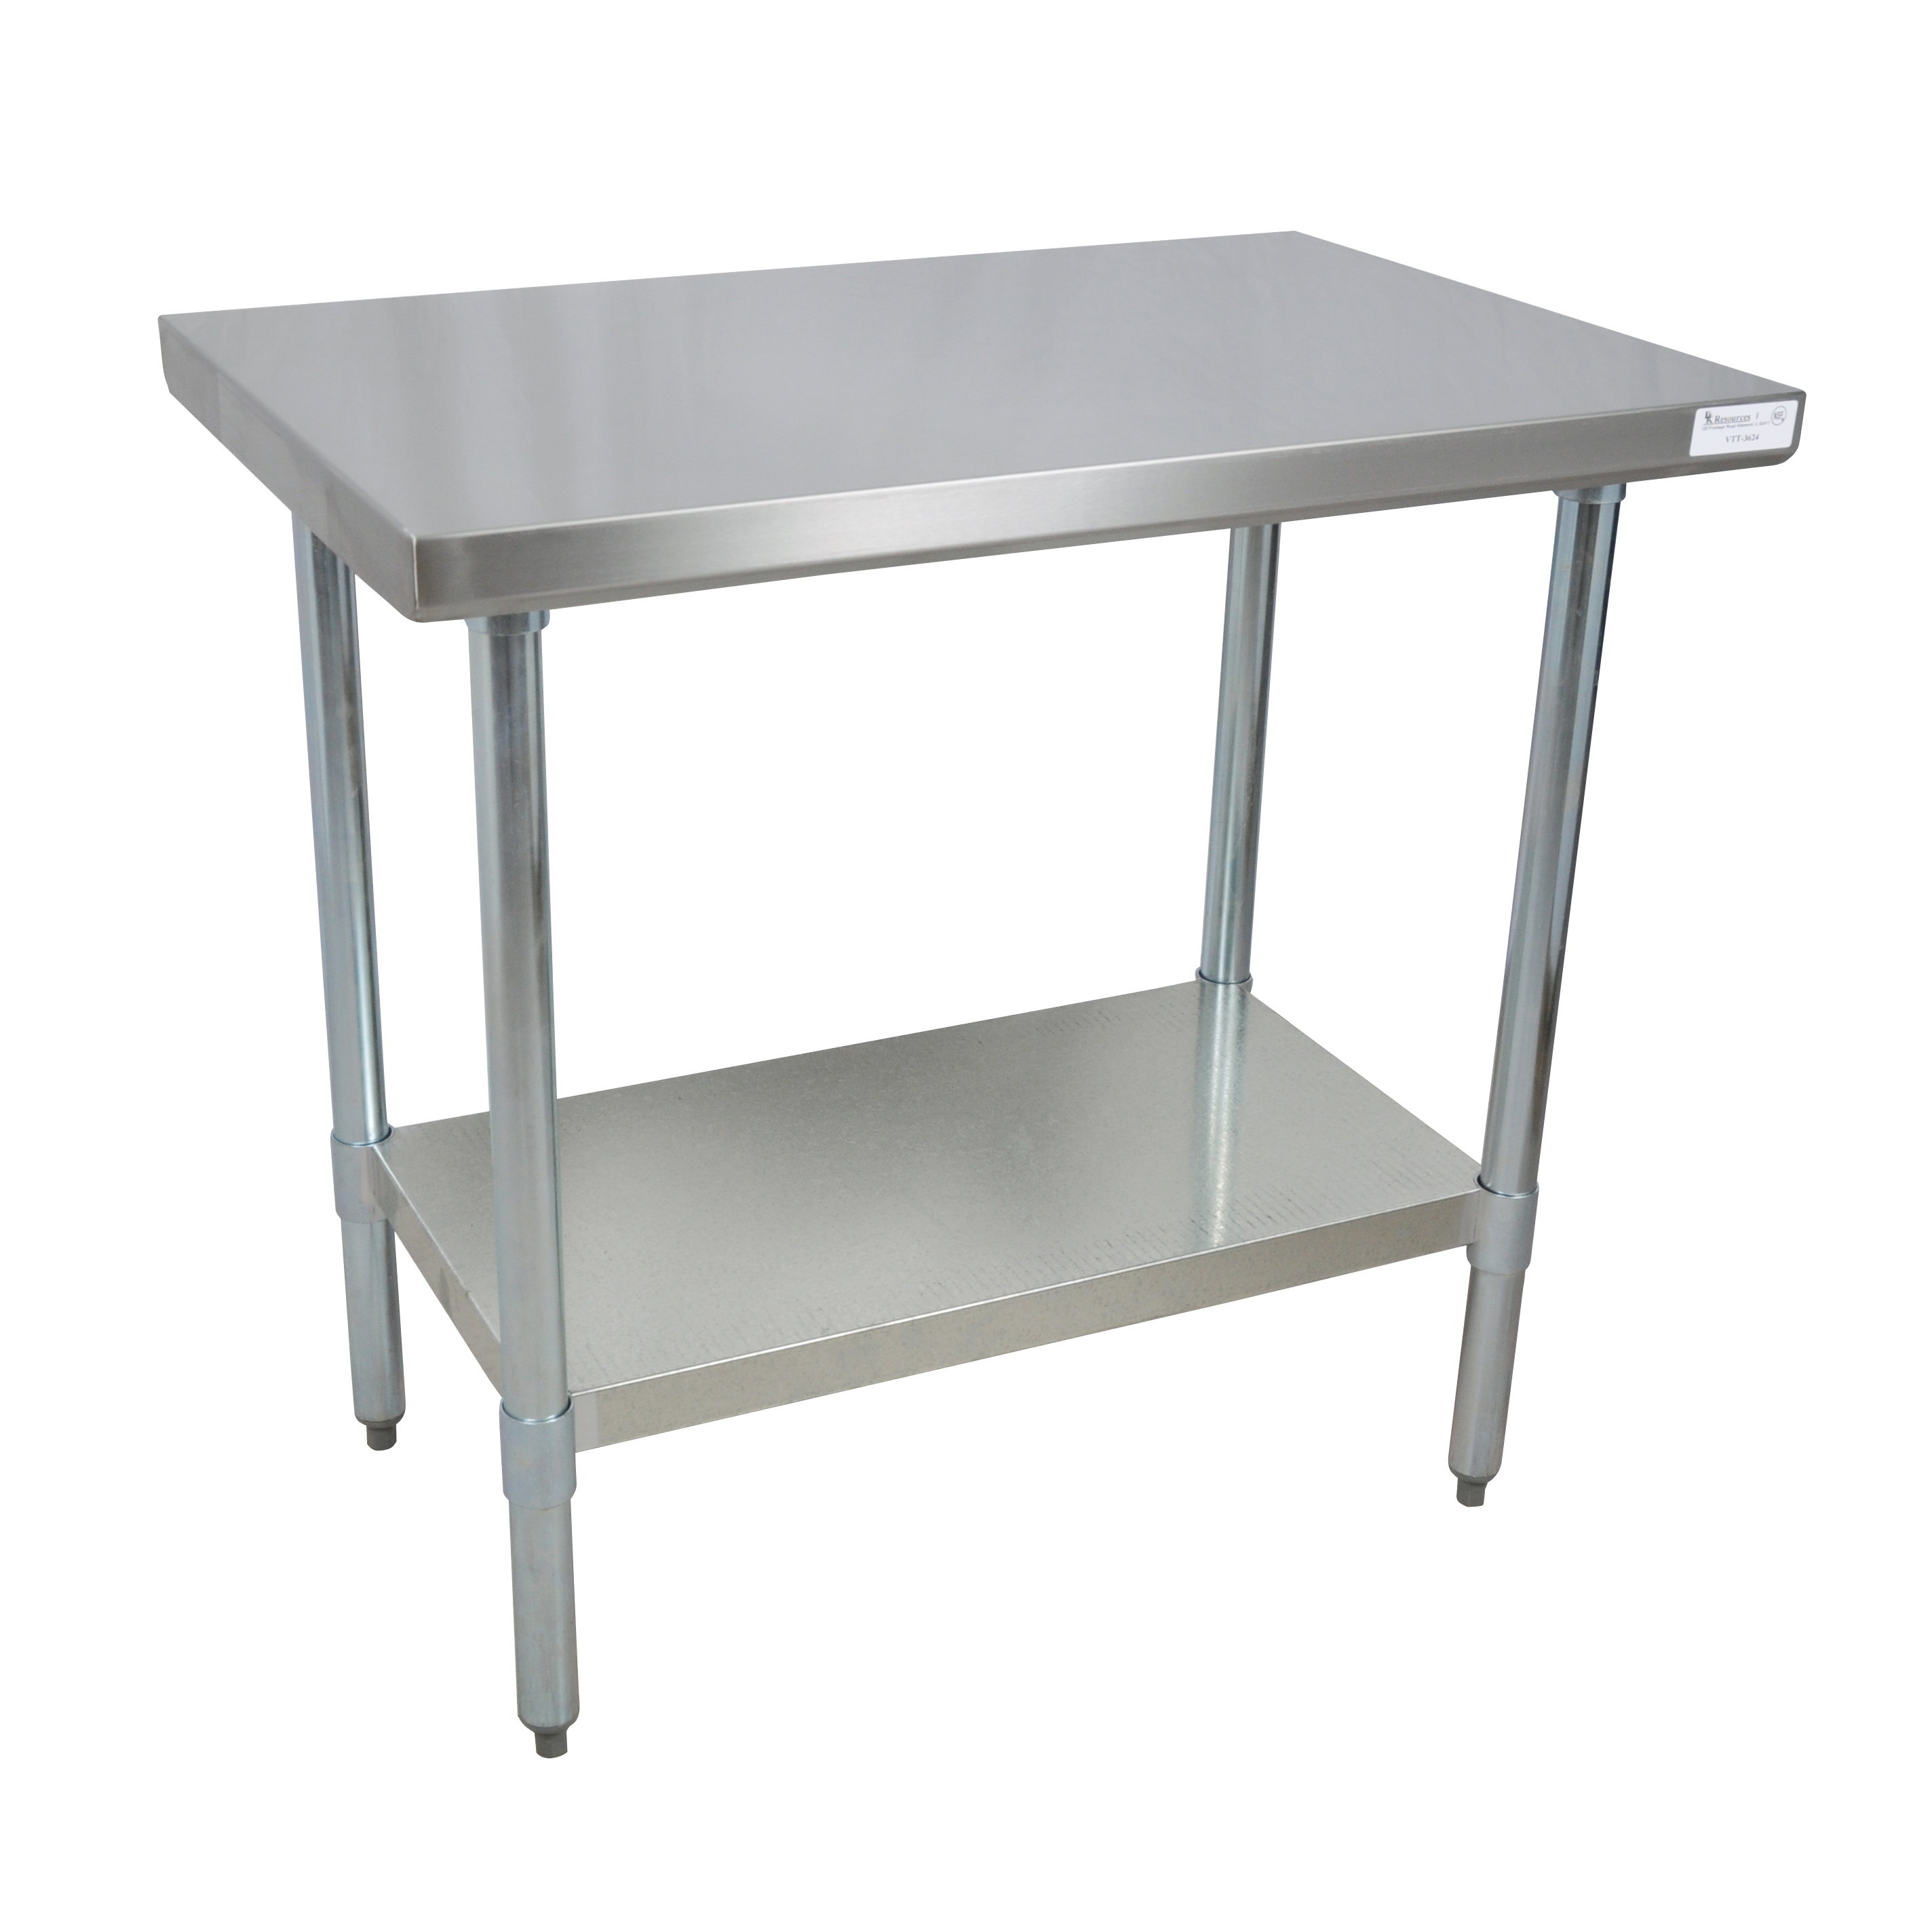 BK Resources QVT-7236 work table,  63